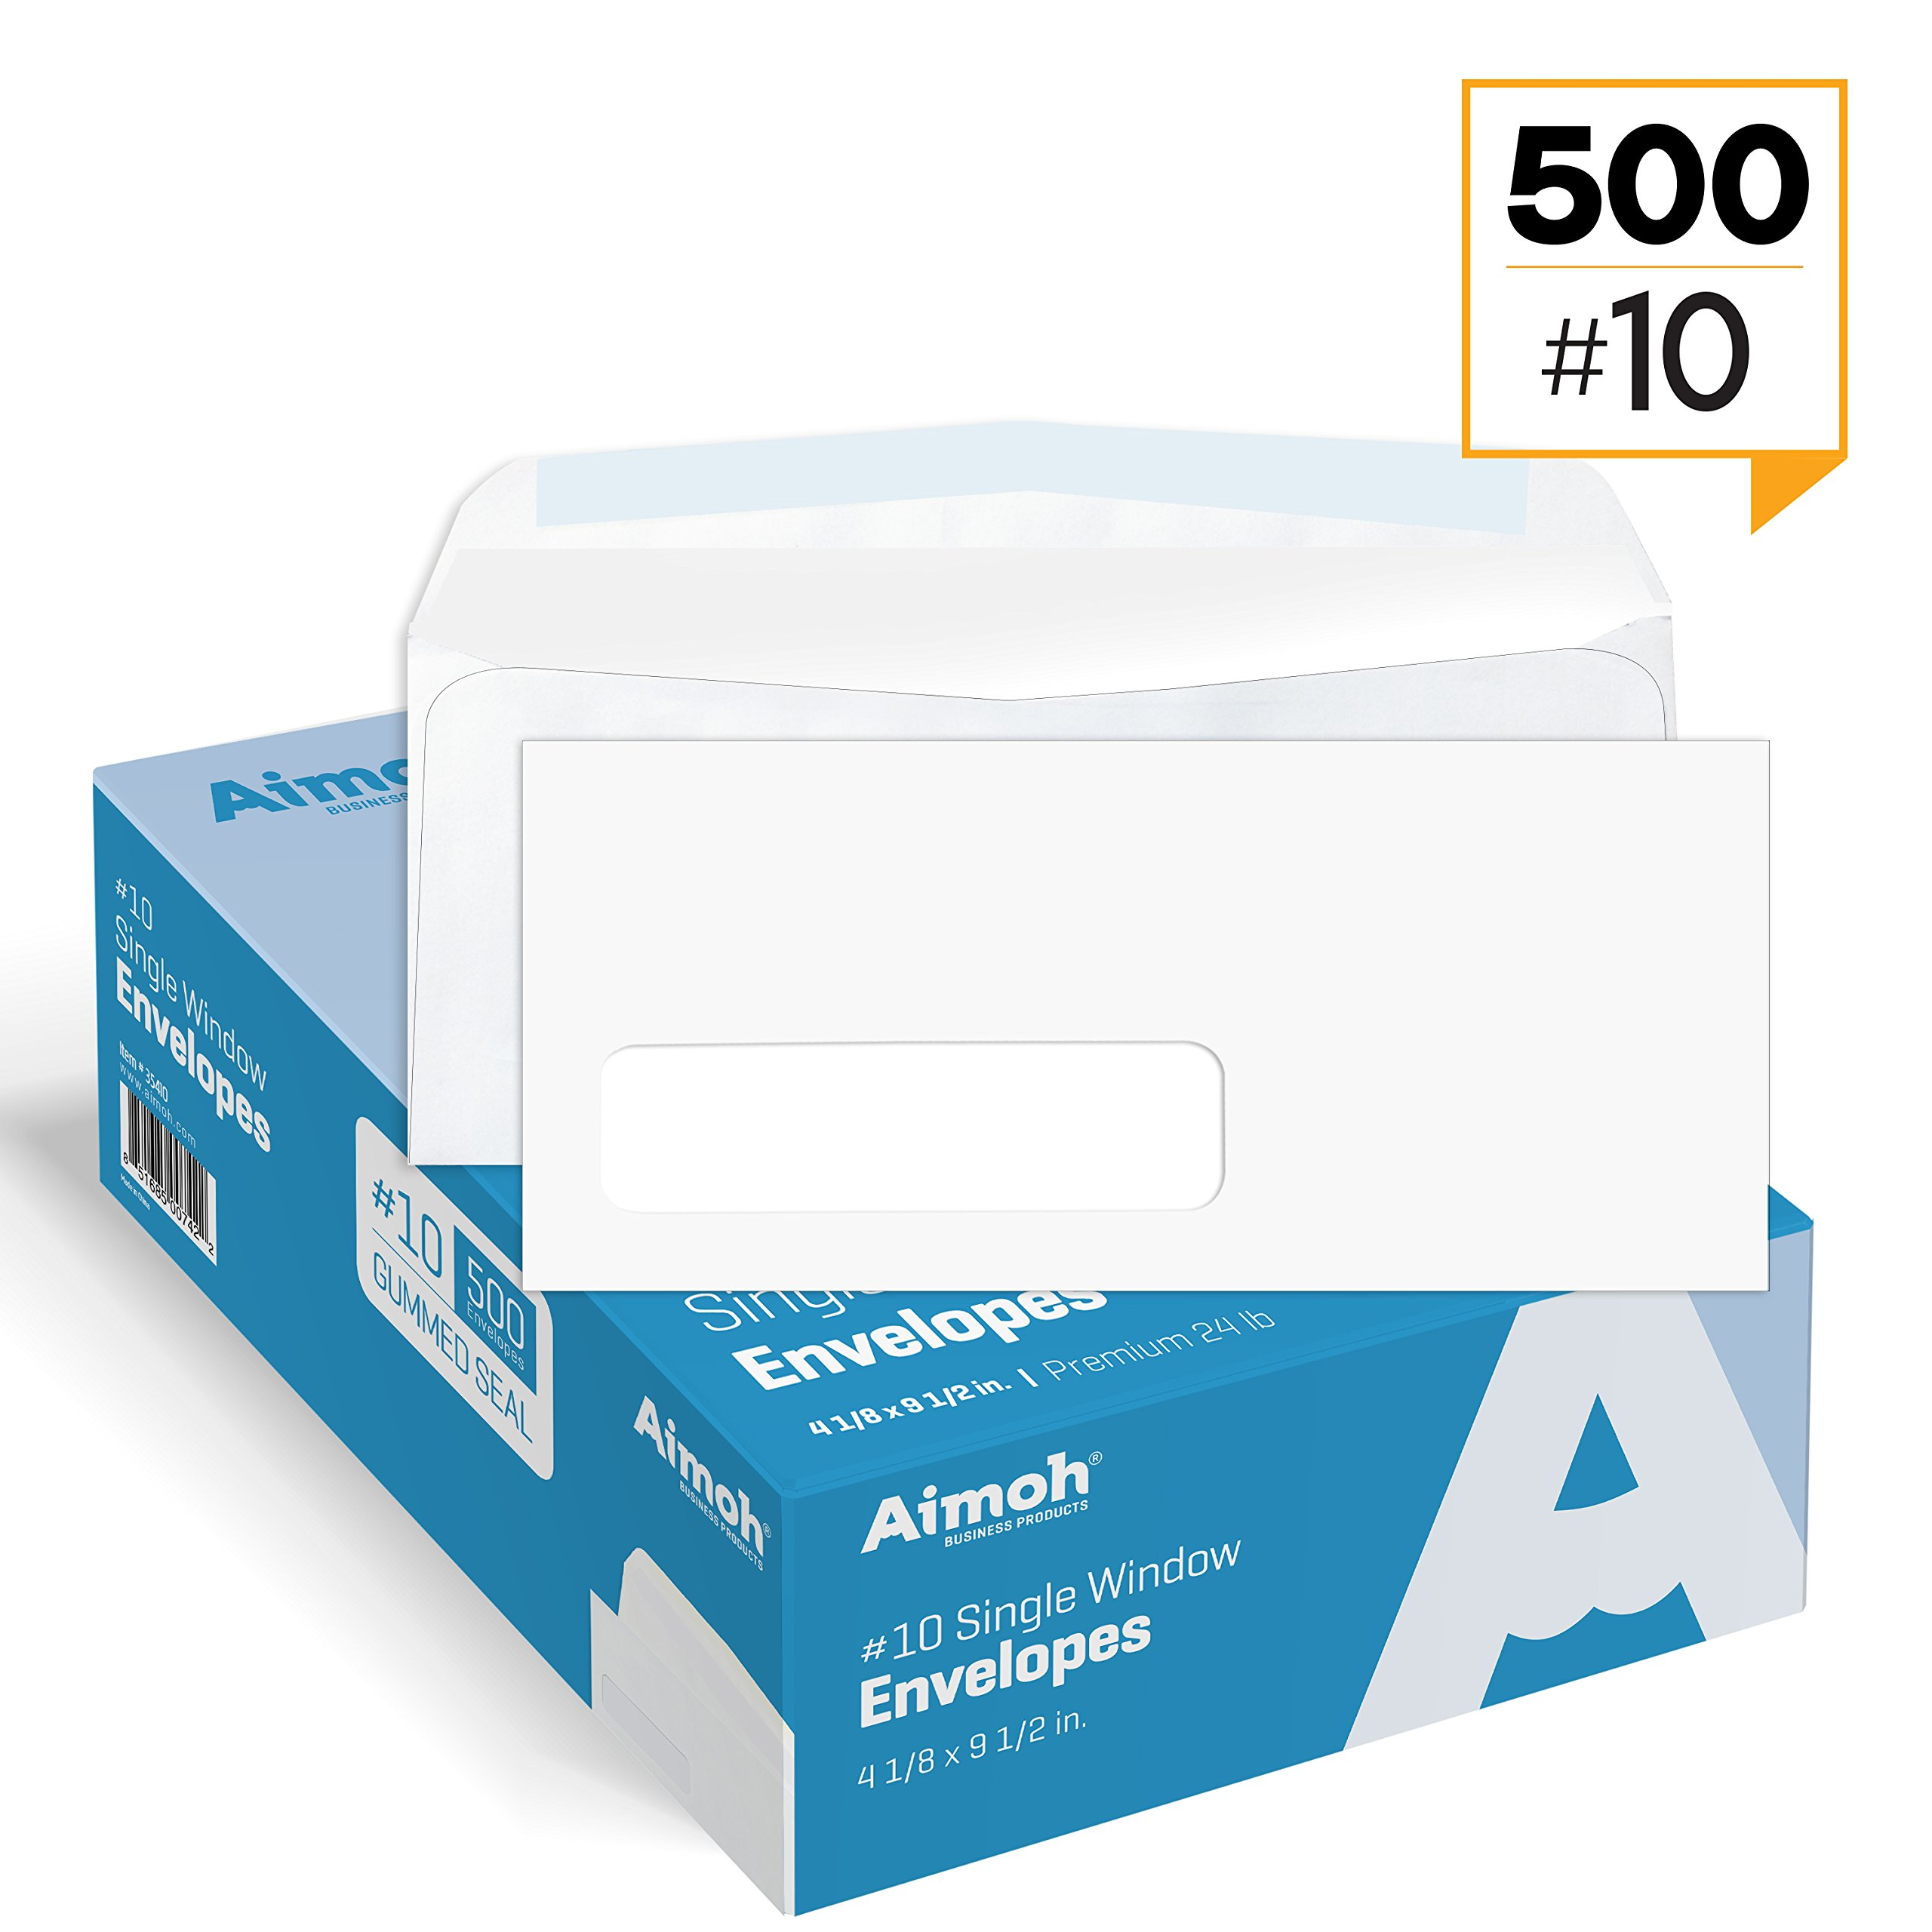 #10 Single Left Window Security Tinted Envelopes, Gummed Closure, Size 4-1/8 X 9-1/2 inches, 24 LB - 500 Count (35310)